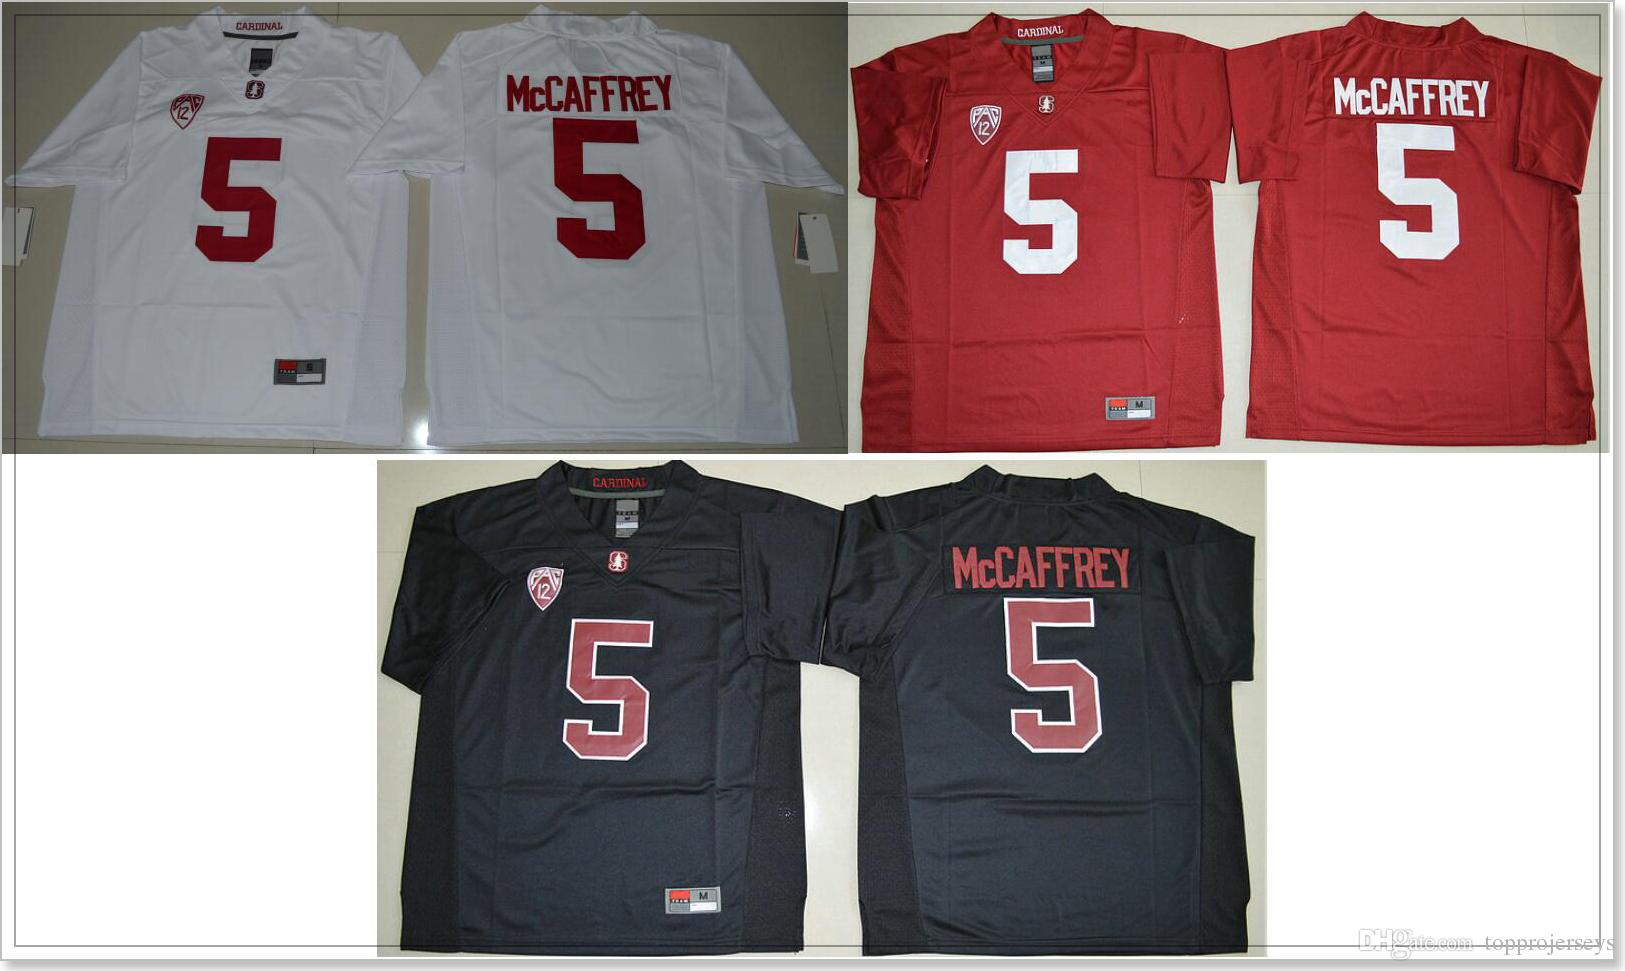 eb336e38 Stanford Cardinal #5 Christian McCaffrey Mens Red Black College American  Football Vintage Sports Shirts Pro Team Jerseys Stitched Embroidery Canada  2019 ...